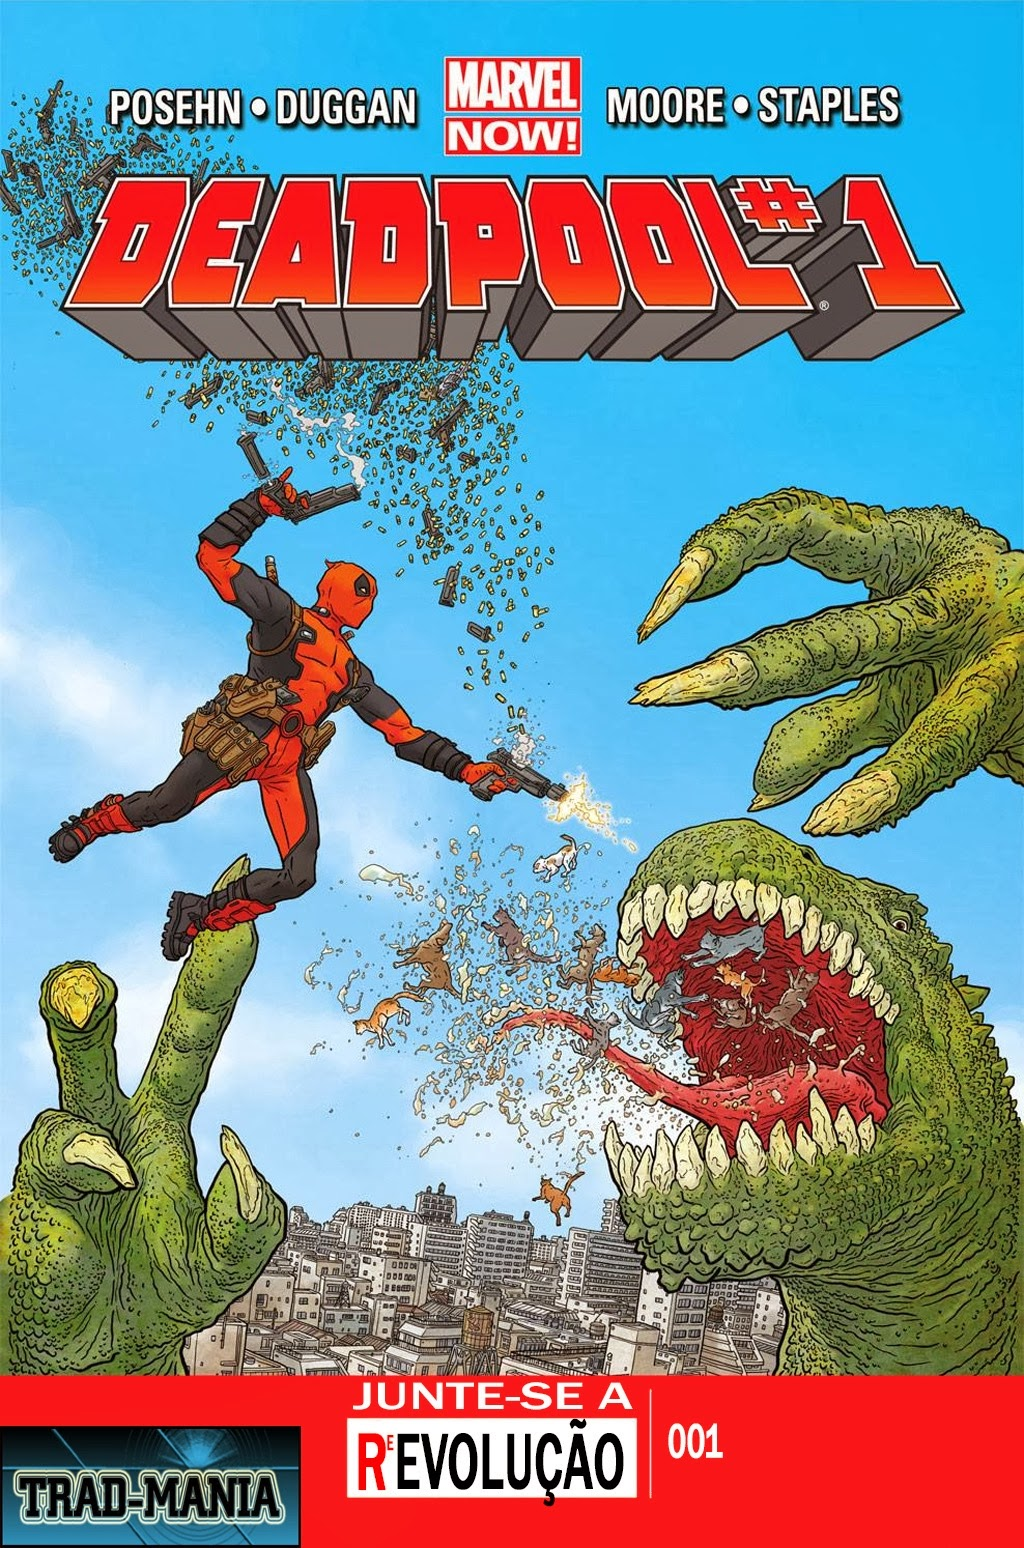 Nova Marvel! Deadpool v5 #1